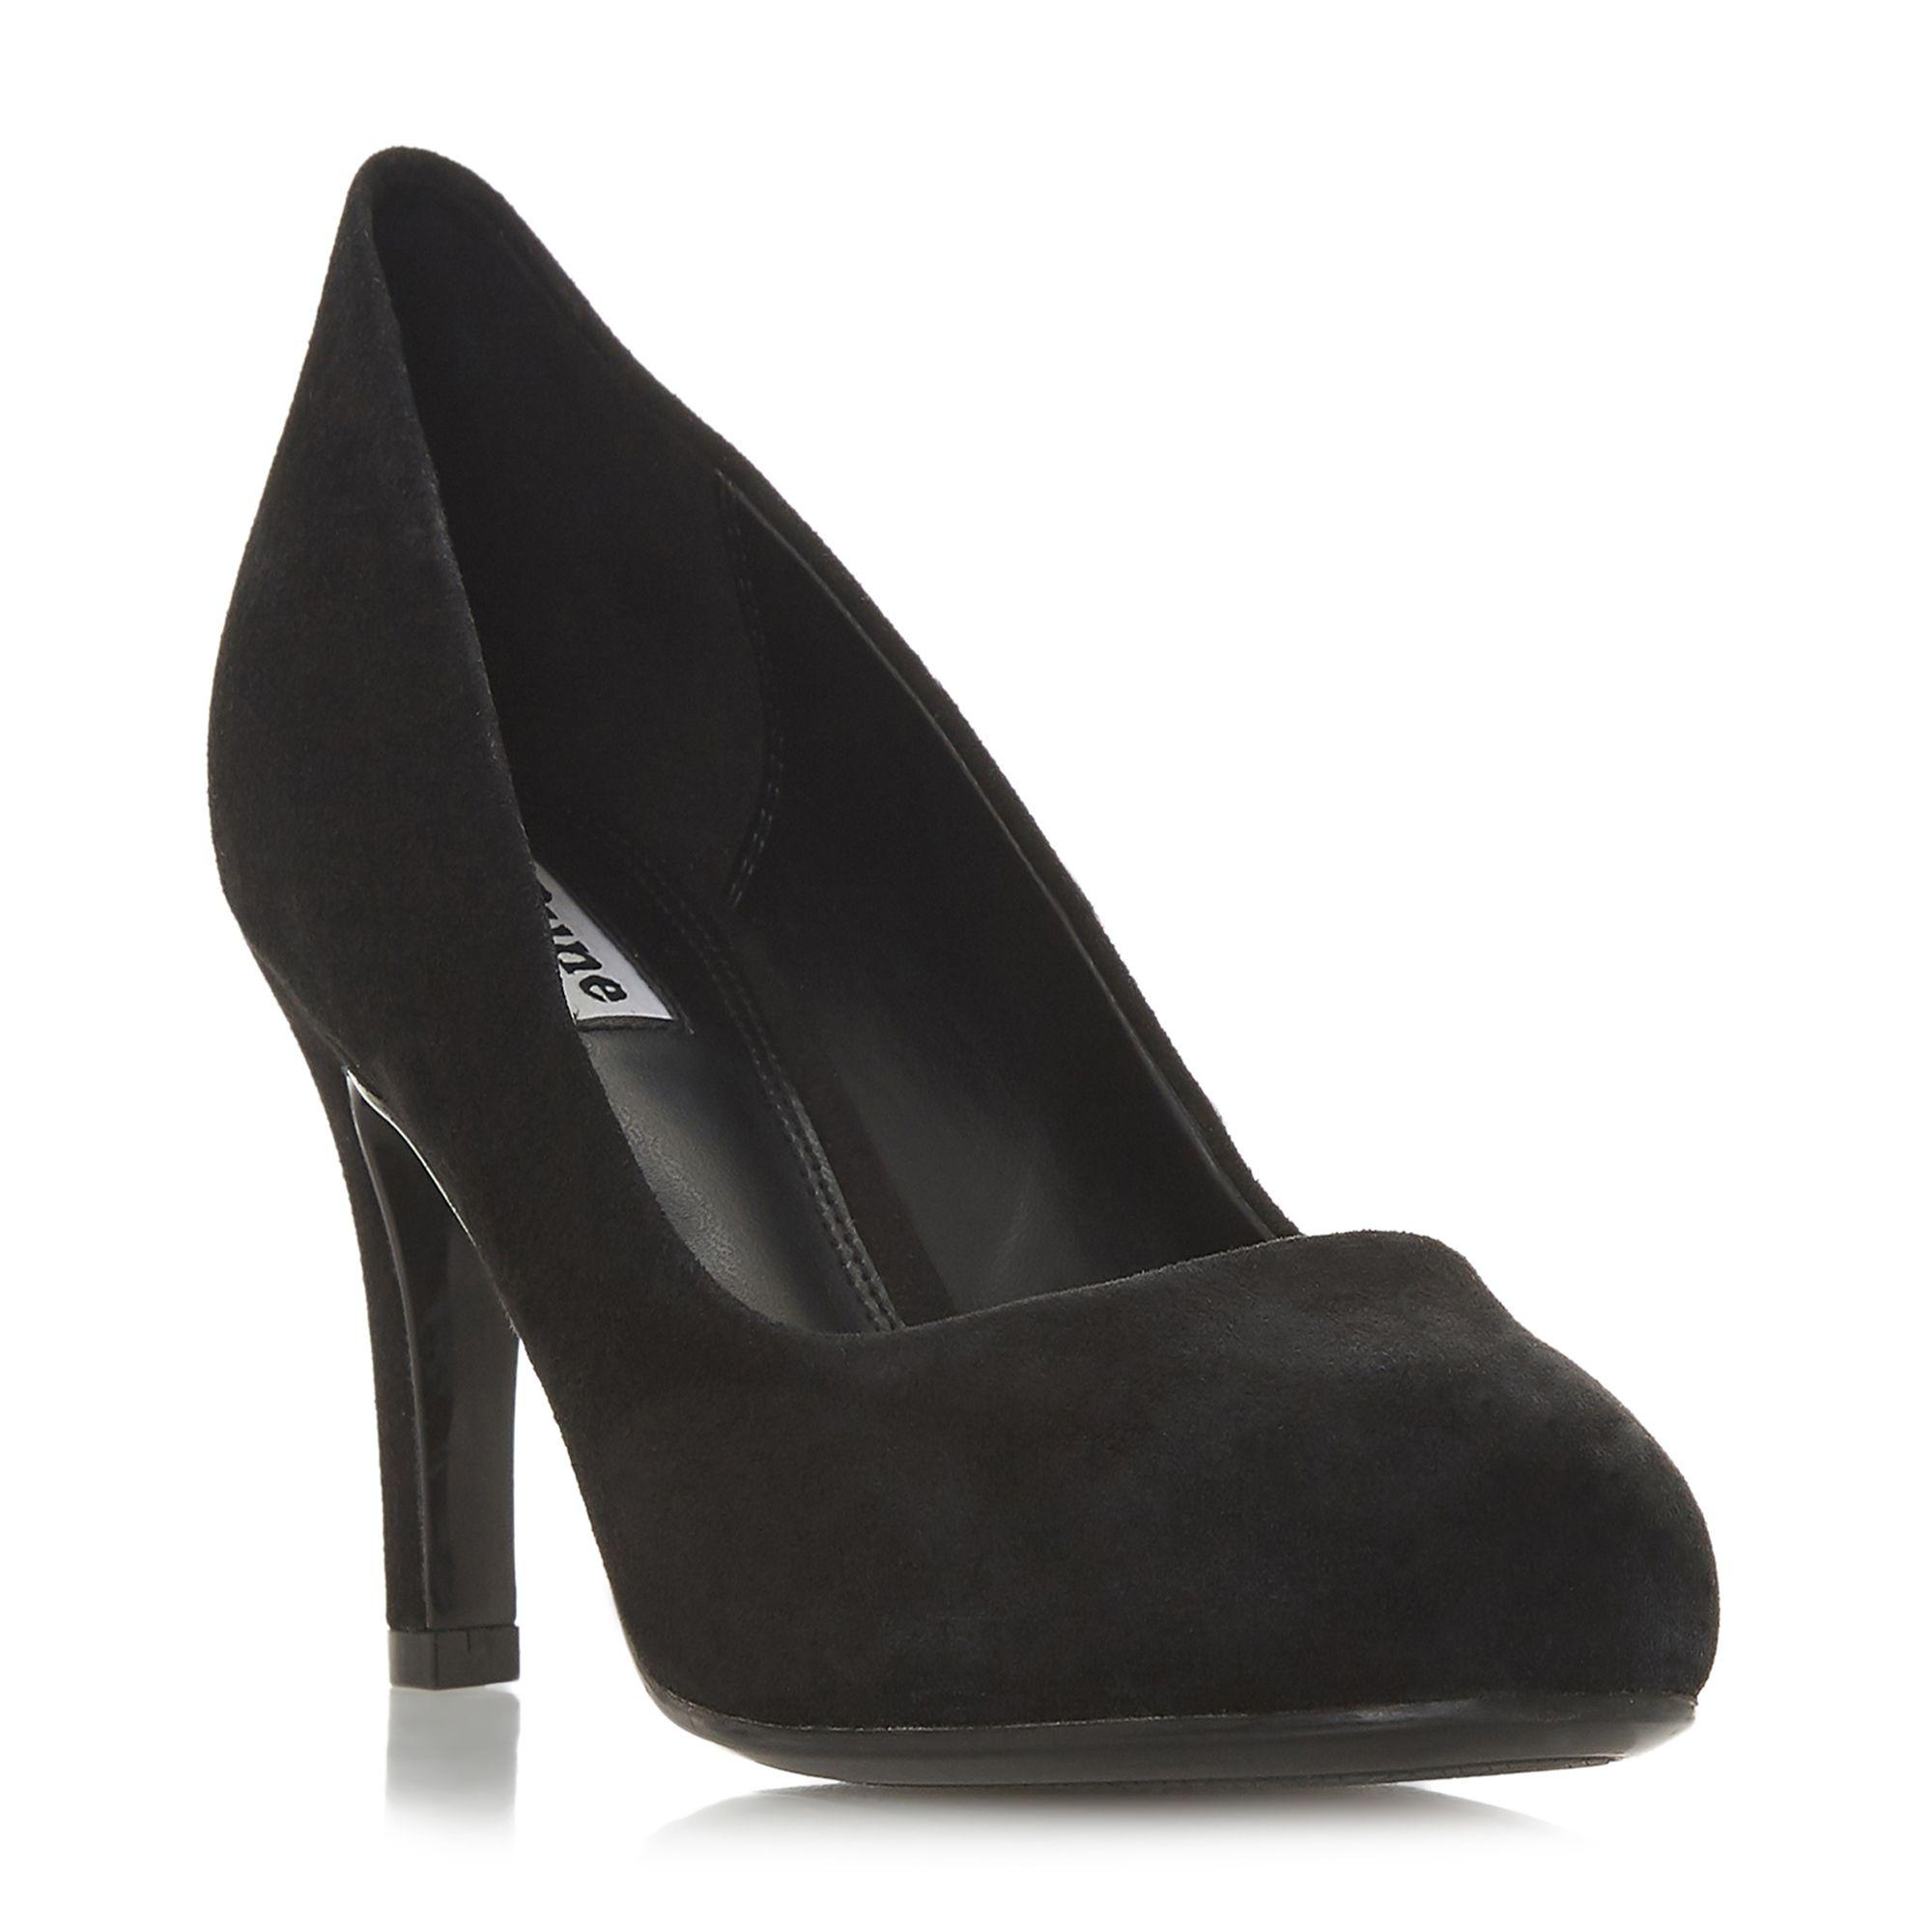 c90aa48ce0246a Dune Black Suede  amalei  Mid Stiletto Heel Court Shoes in Black - Lyst